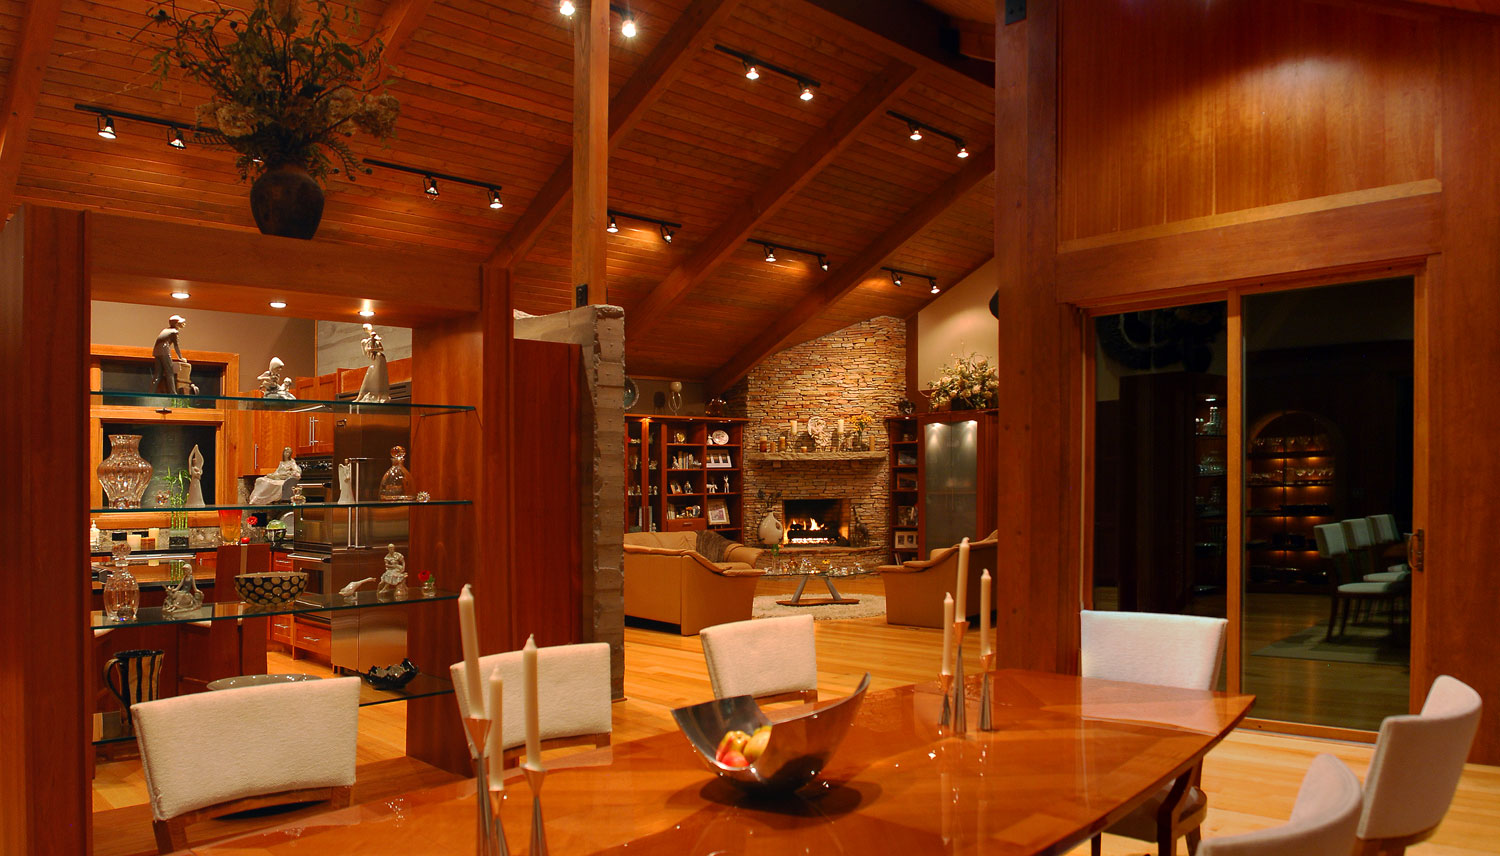 Dining room in a custom designed home by Pavelchak Architecture in Valle Crucis, North Carolina, near Boone